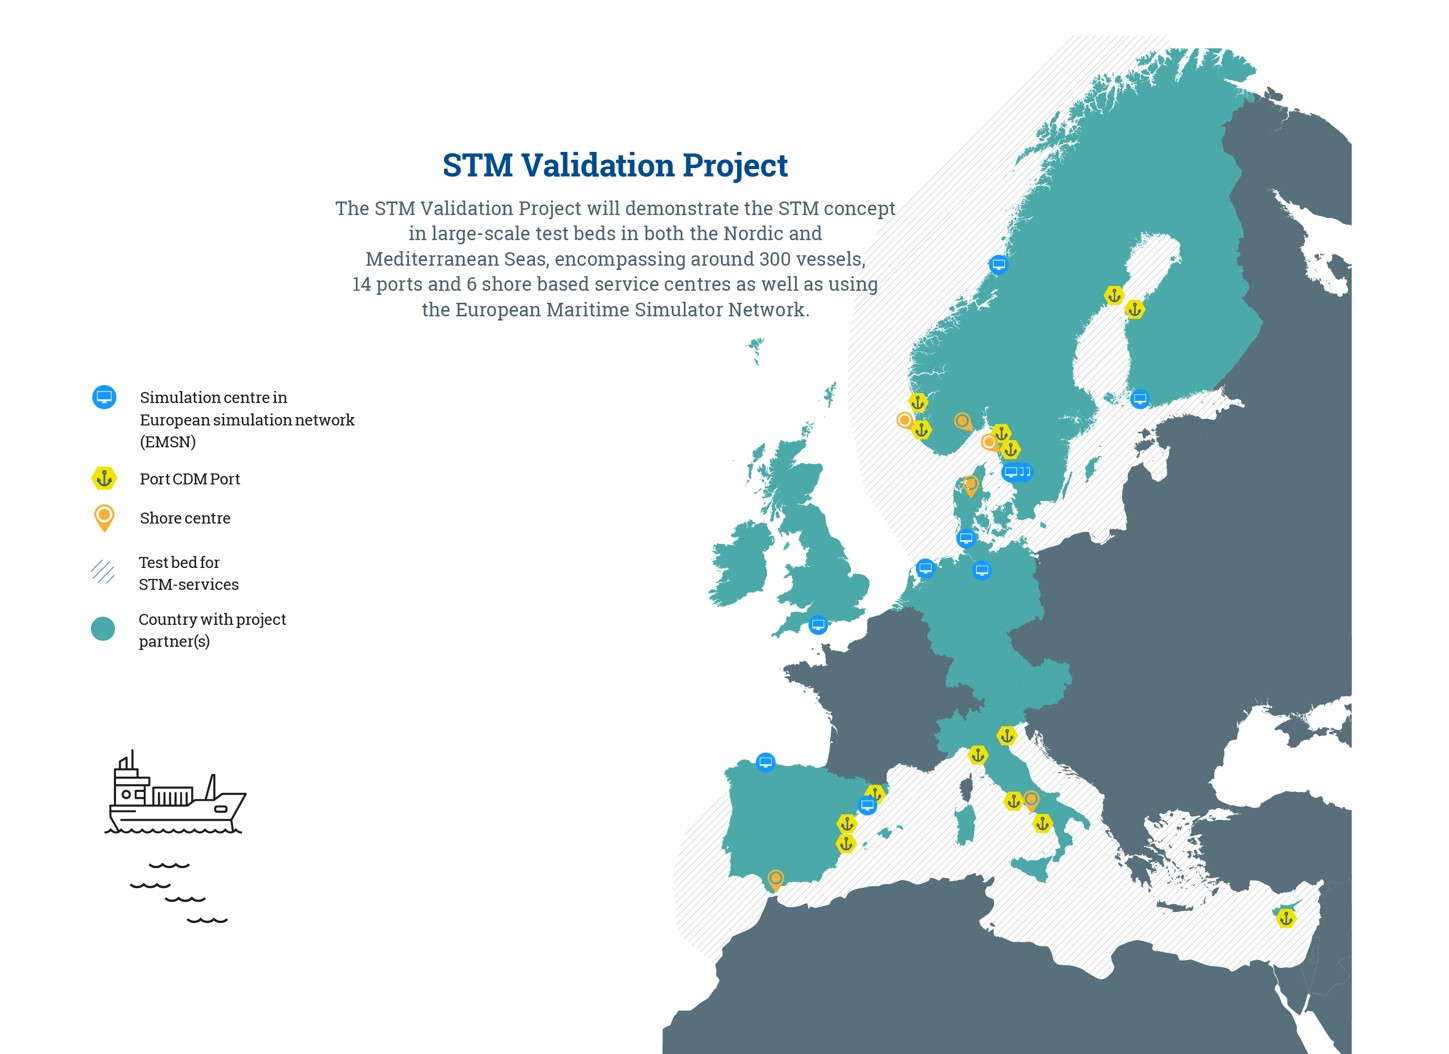 STM validation project map